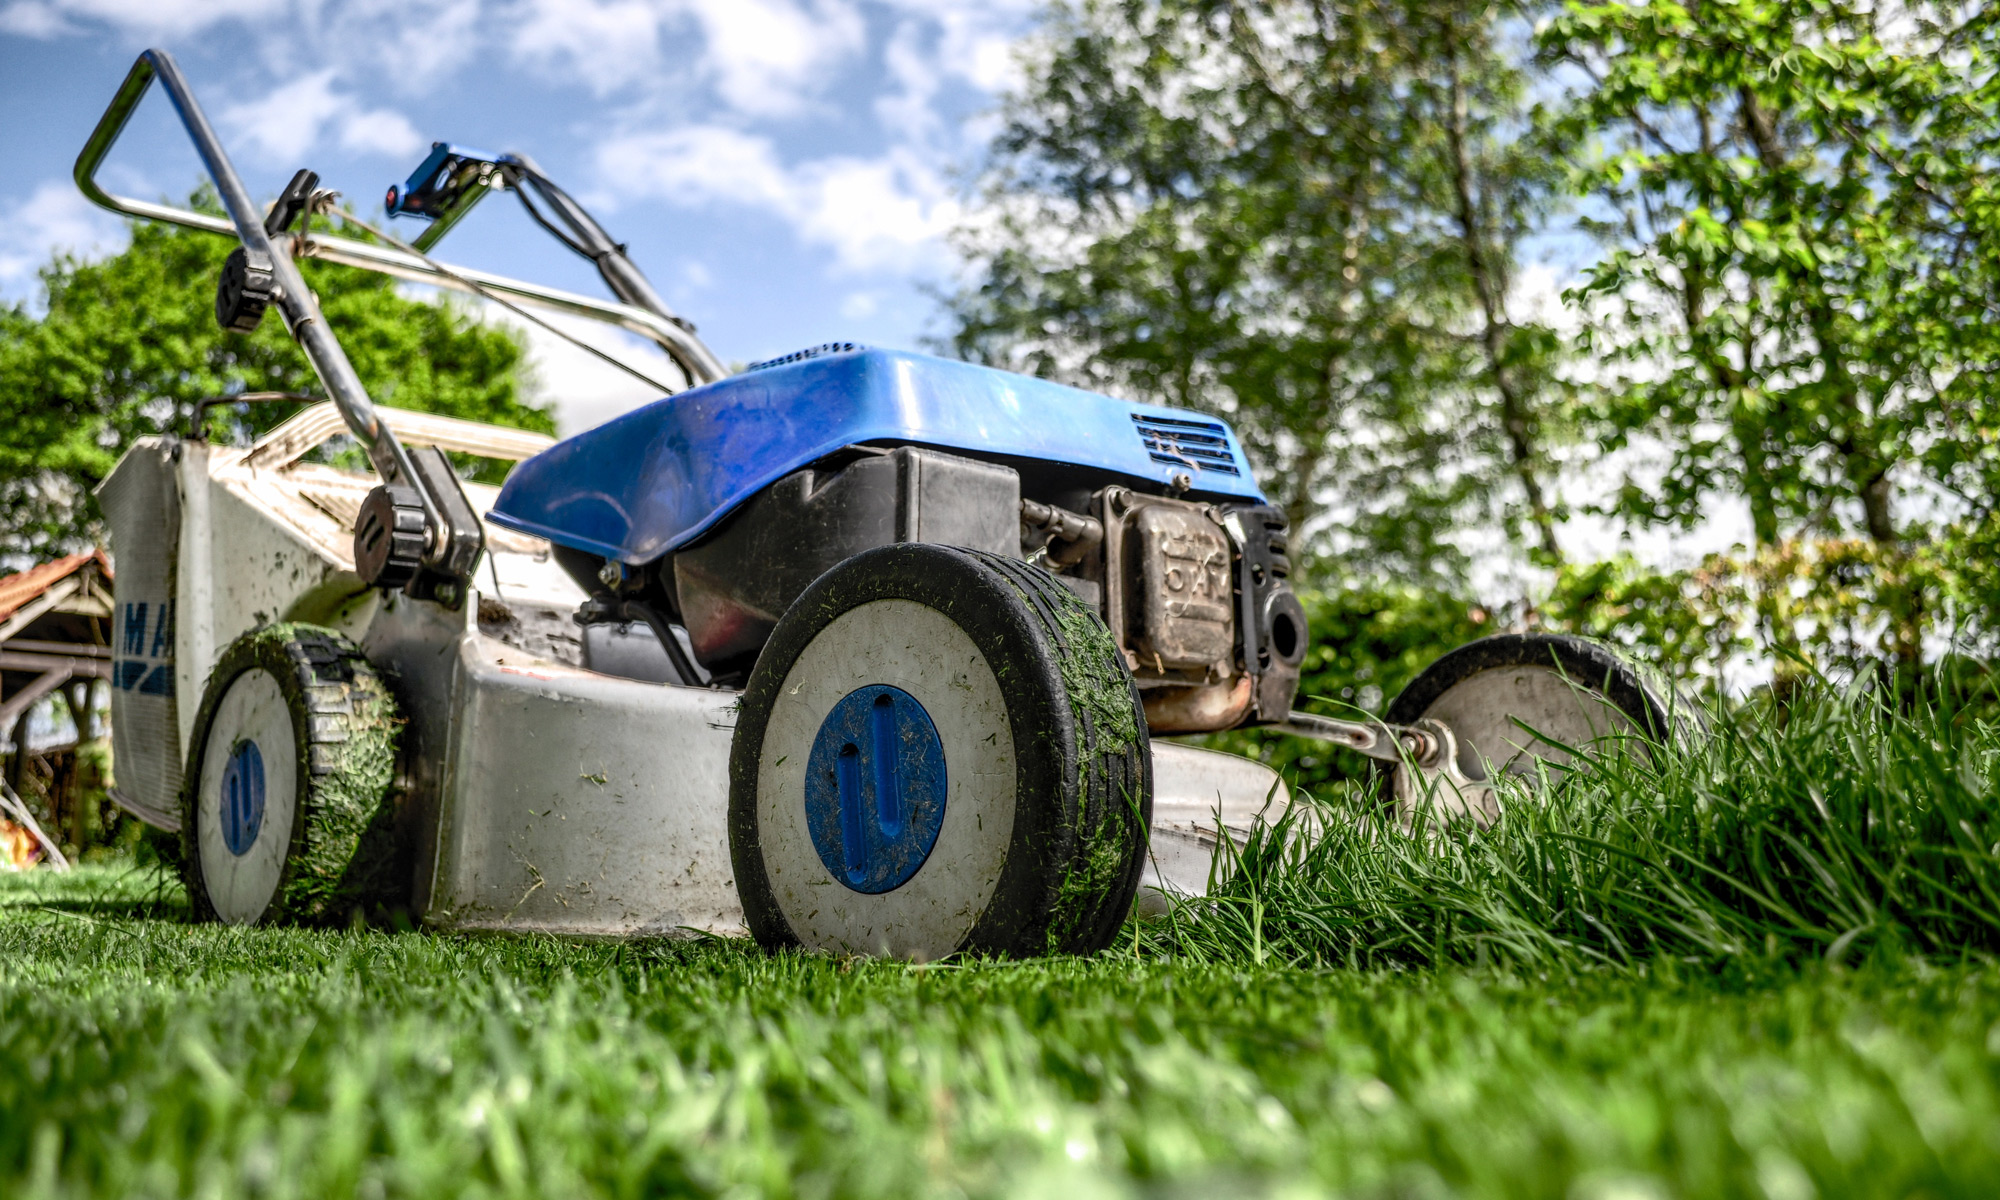 Lawn care and garden maintenance in Bedfordshire